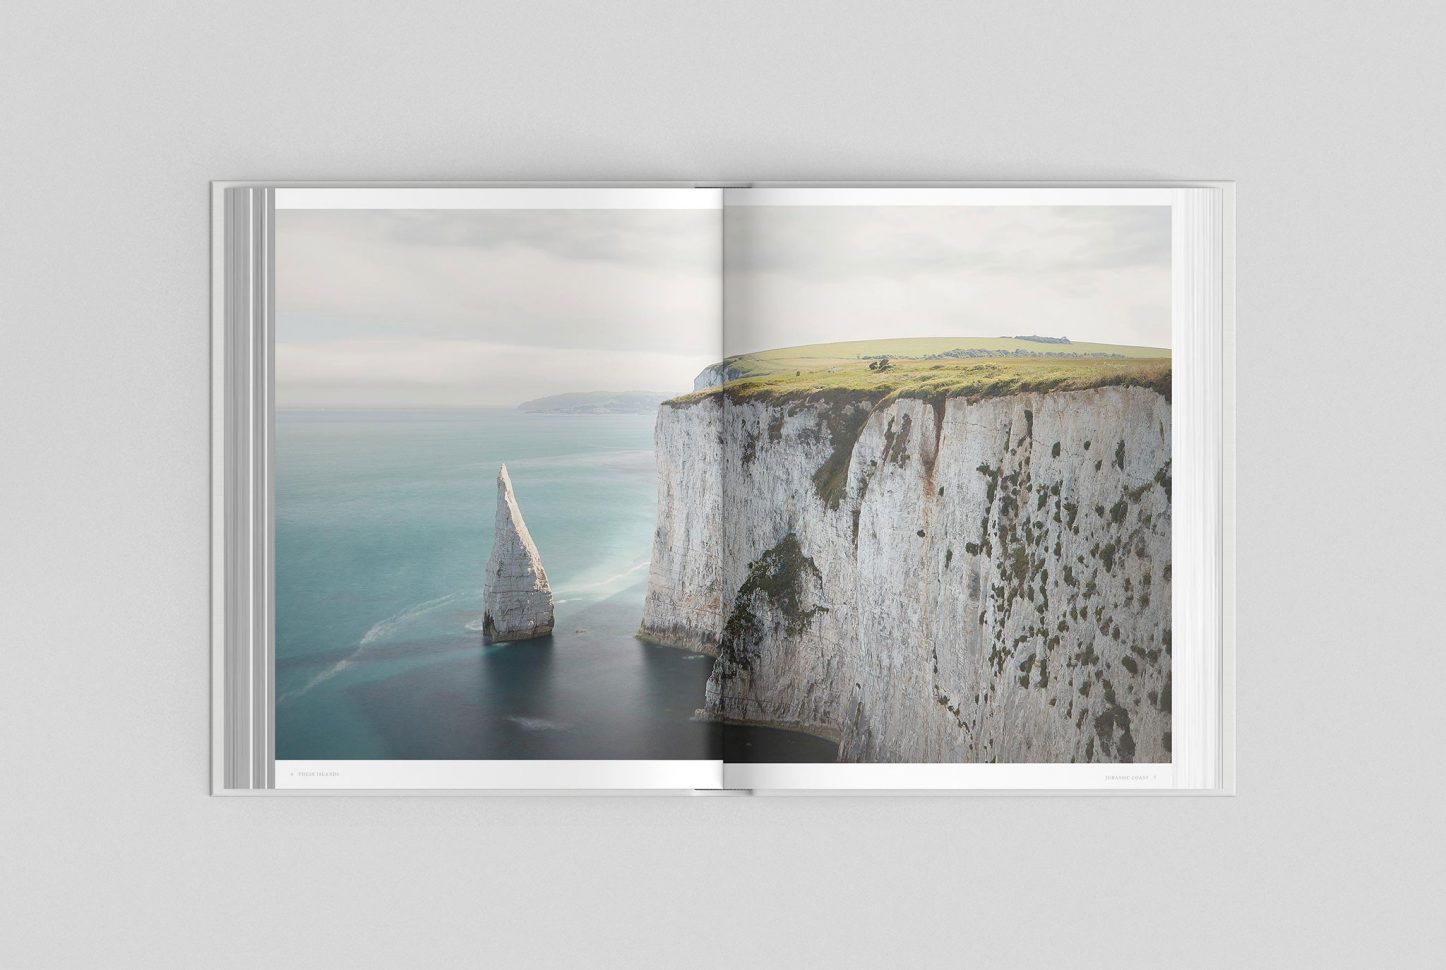 These Islands - A Portrait of the British Isles